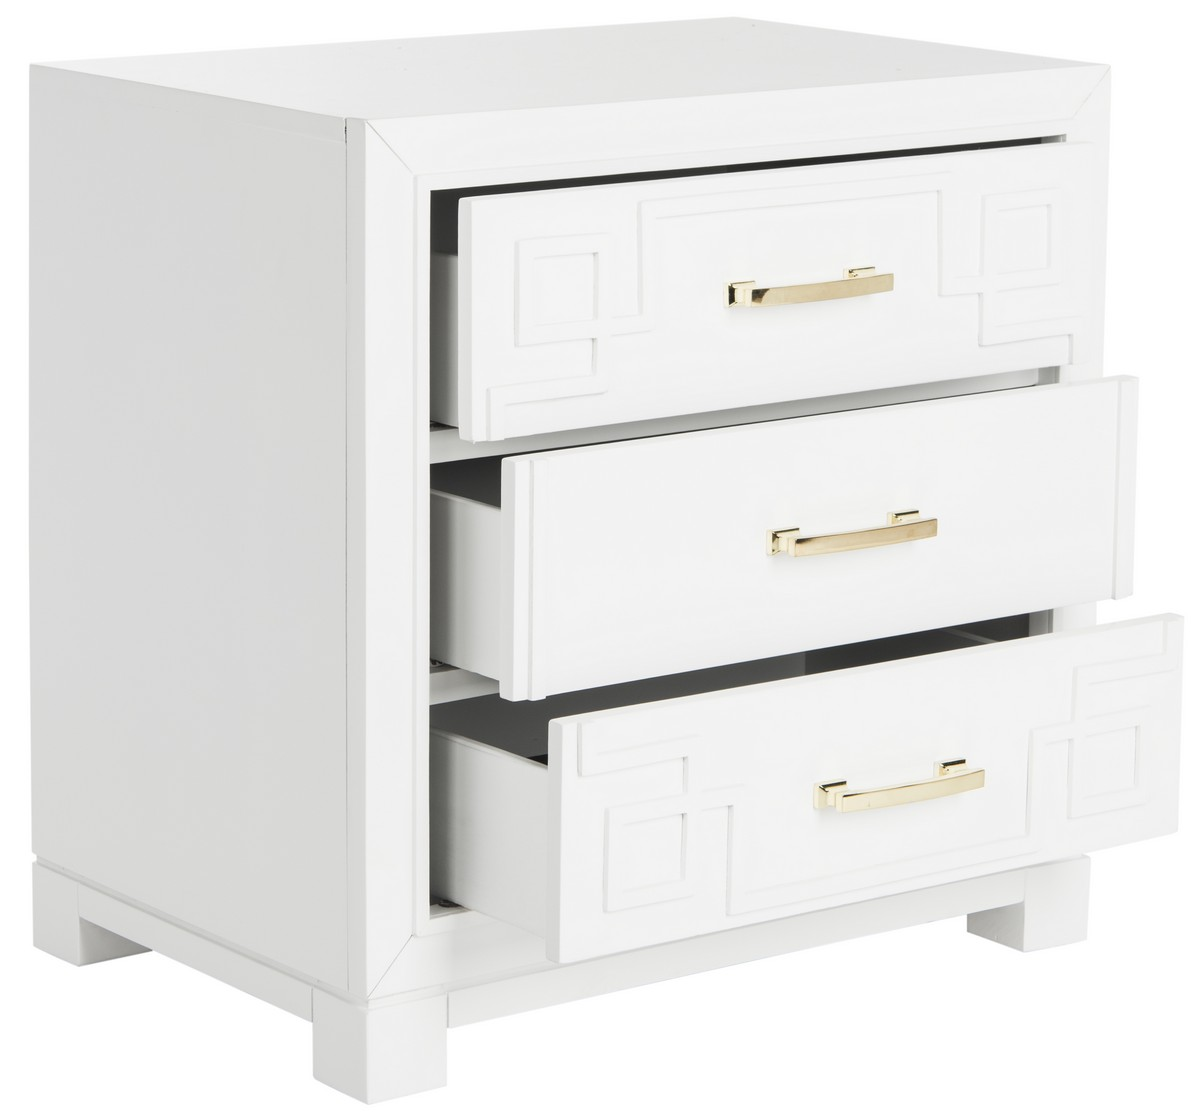 Fox6278a Accent Tables Nightstands Furniture By Safavieh